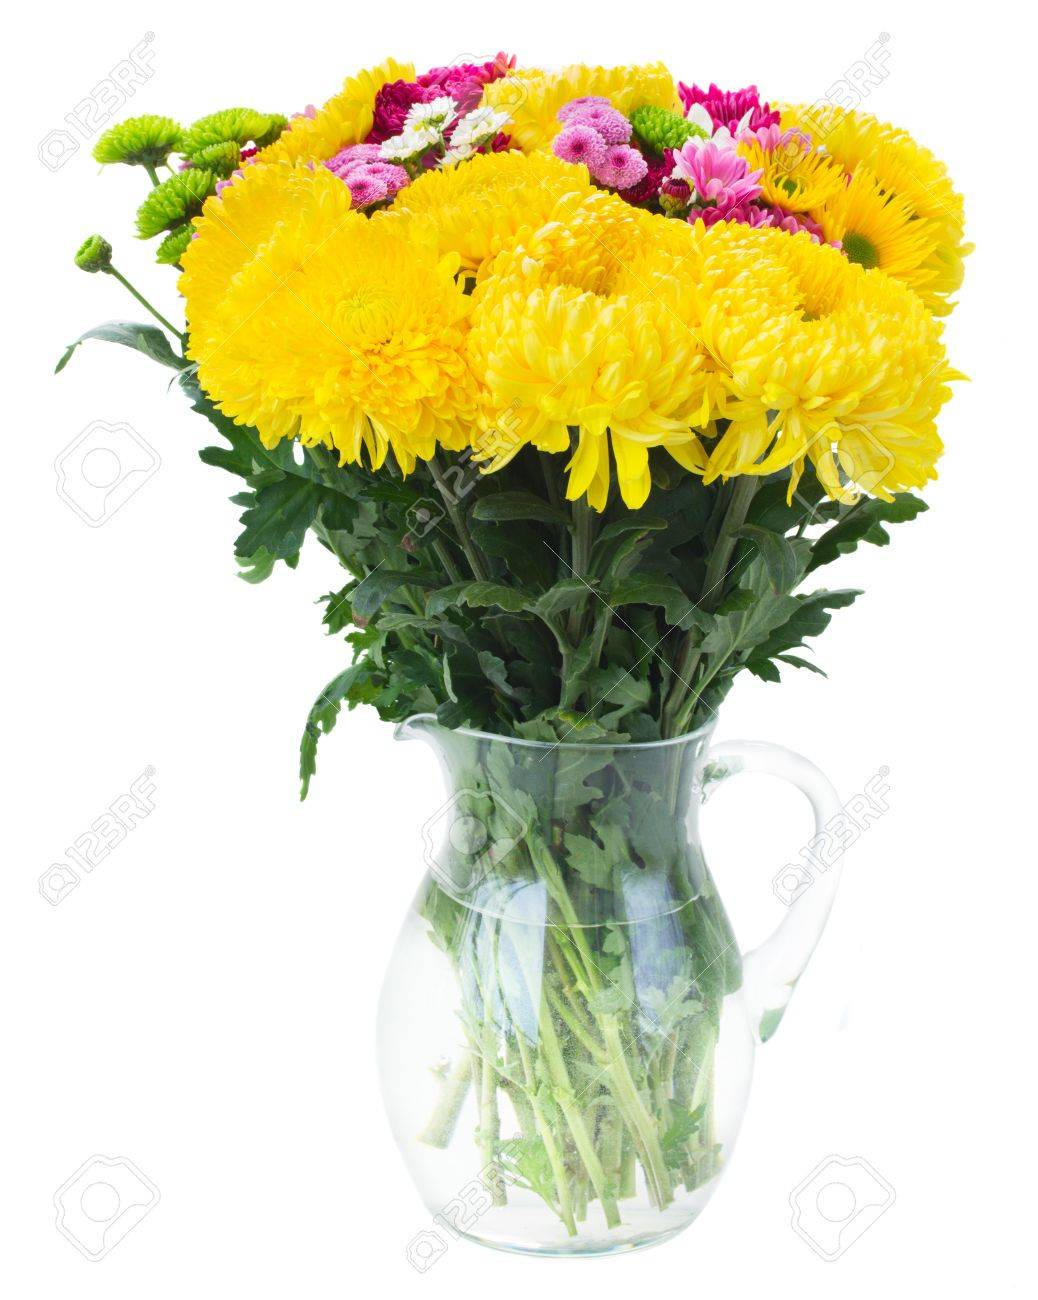 Yellow red and pink fresh mum flowers bouquet in glass vase stock stock photo yellow red and pink fresh mum flowers bouquet in glass vase isolated on white background izmirmasajfo